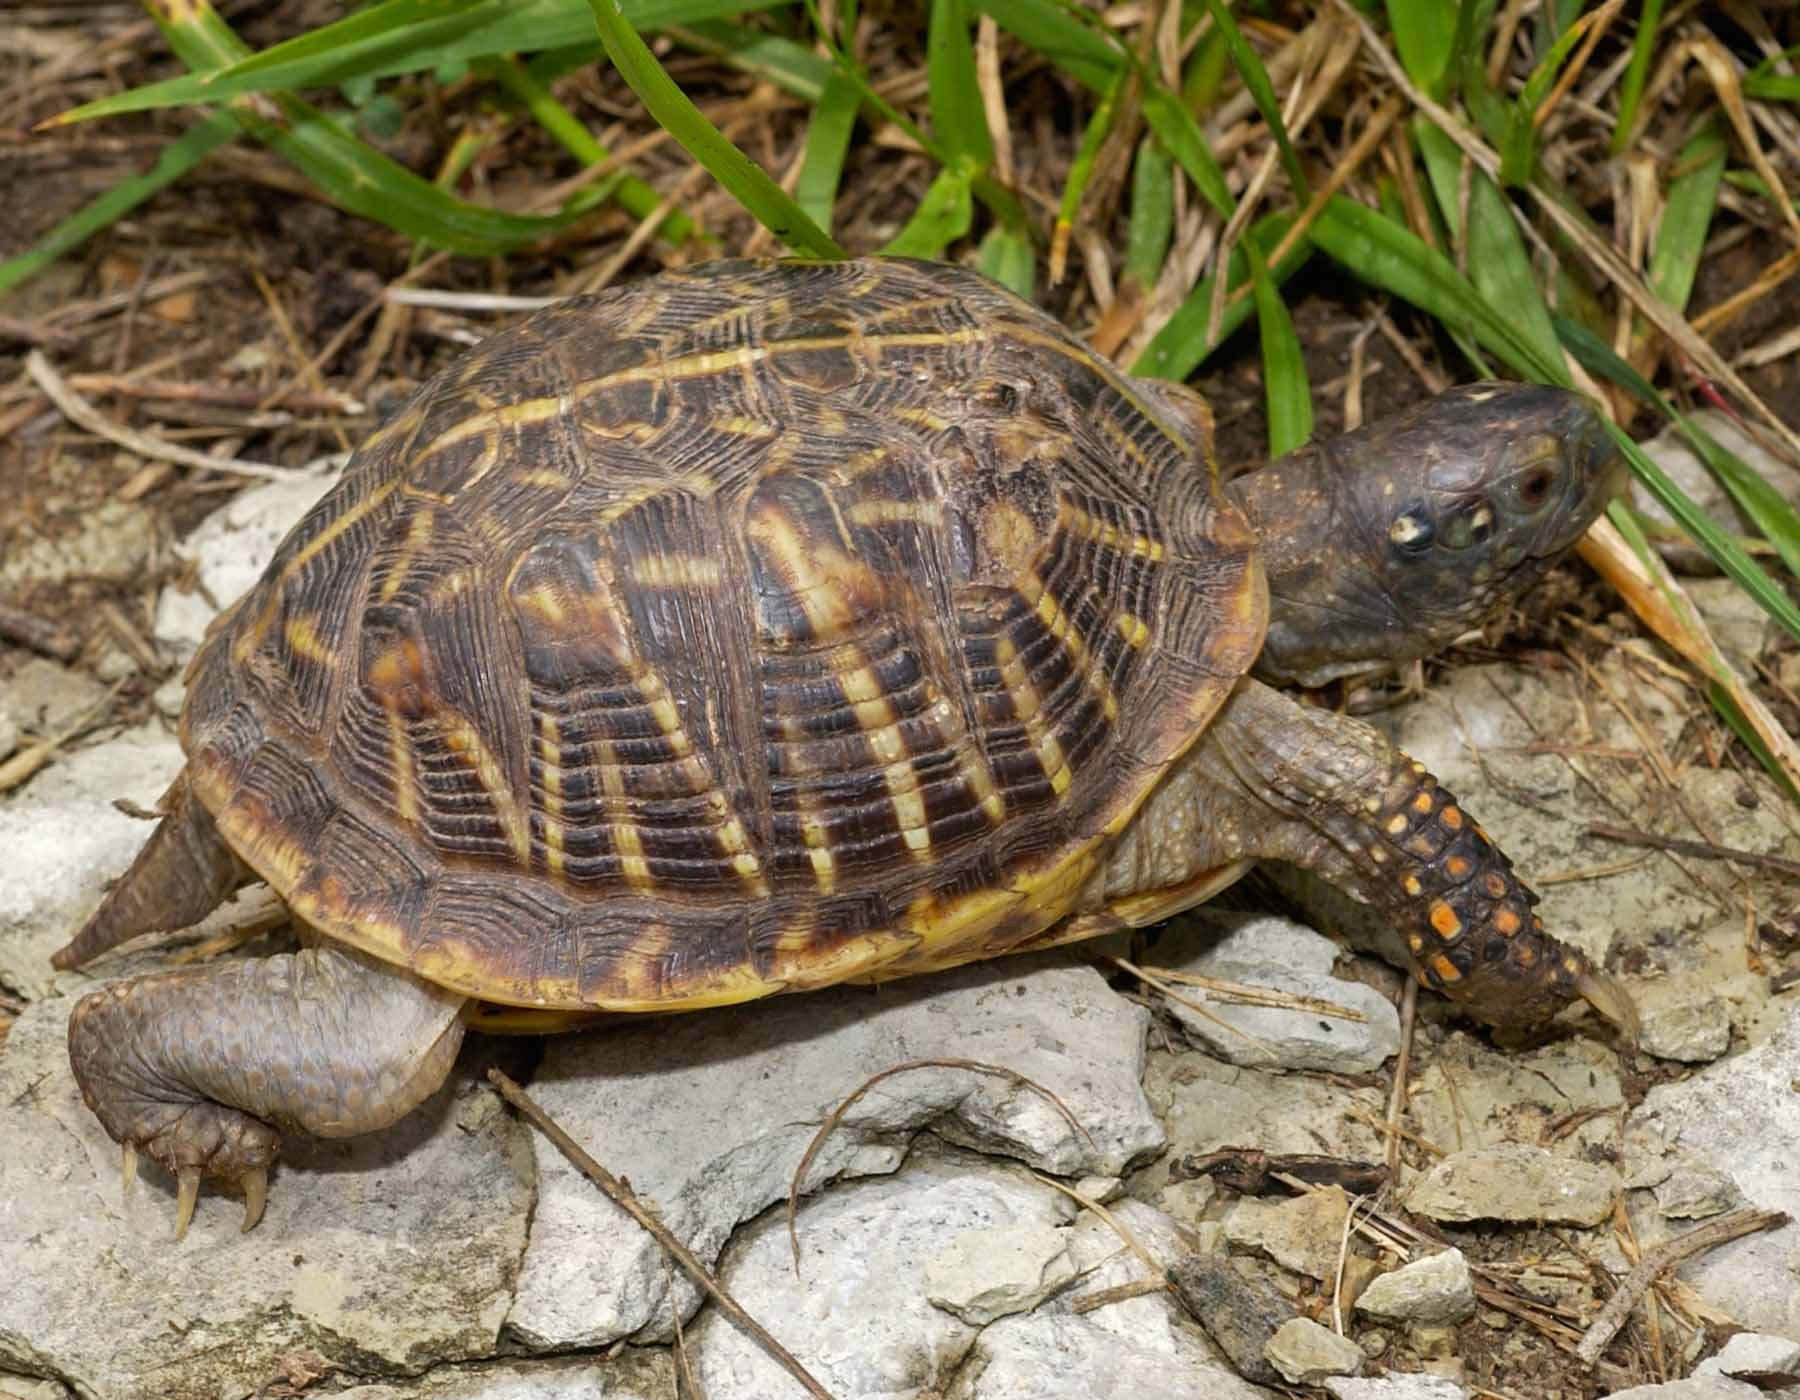 An ornate box turtle walking.